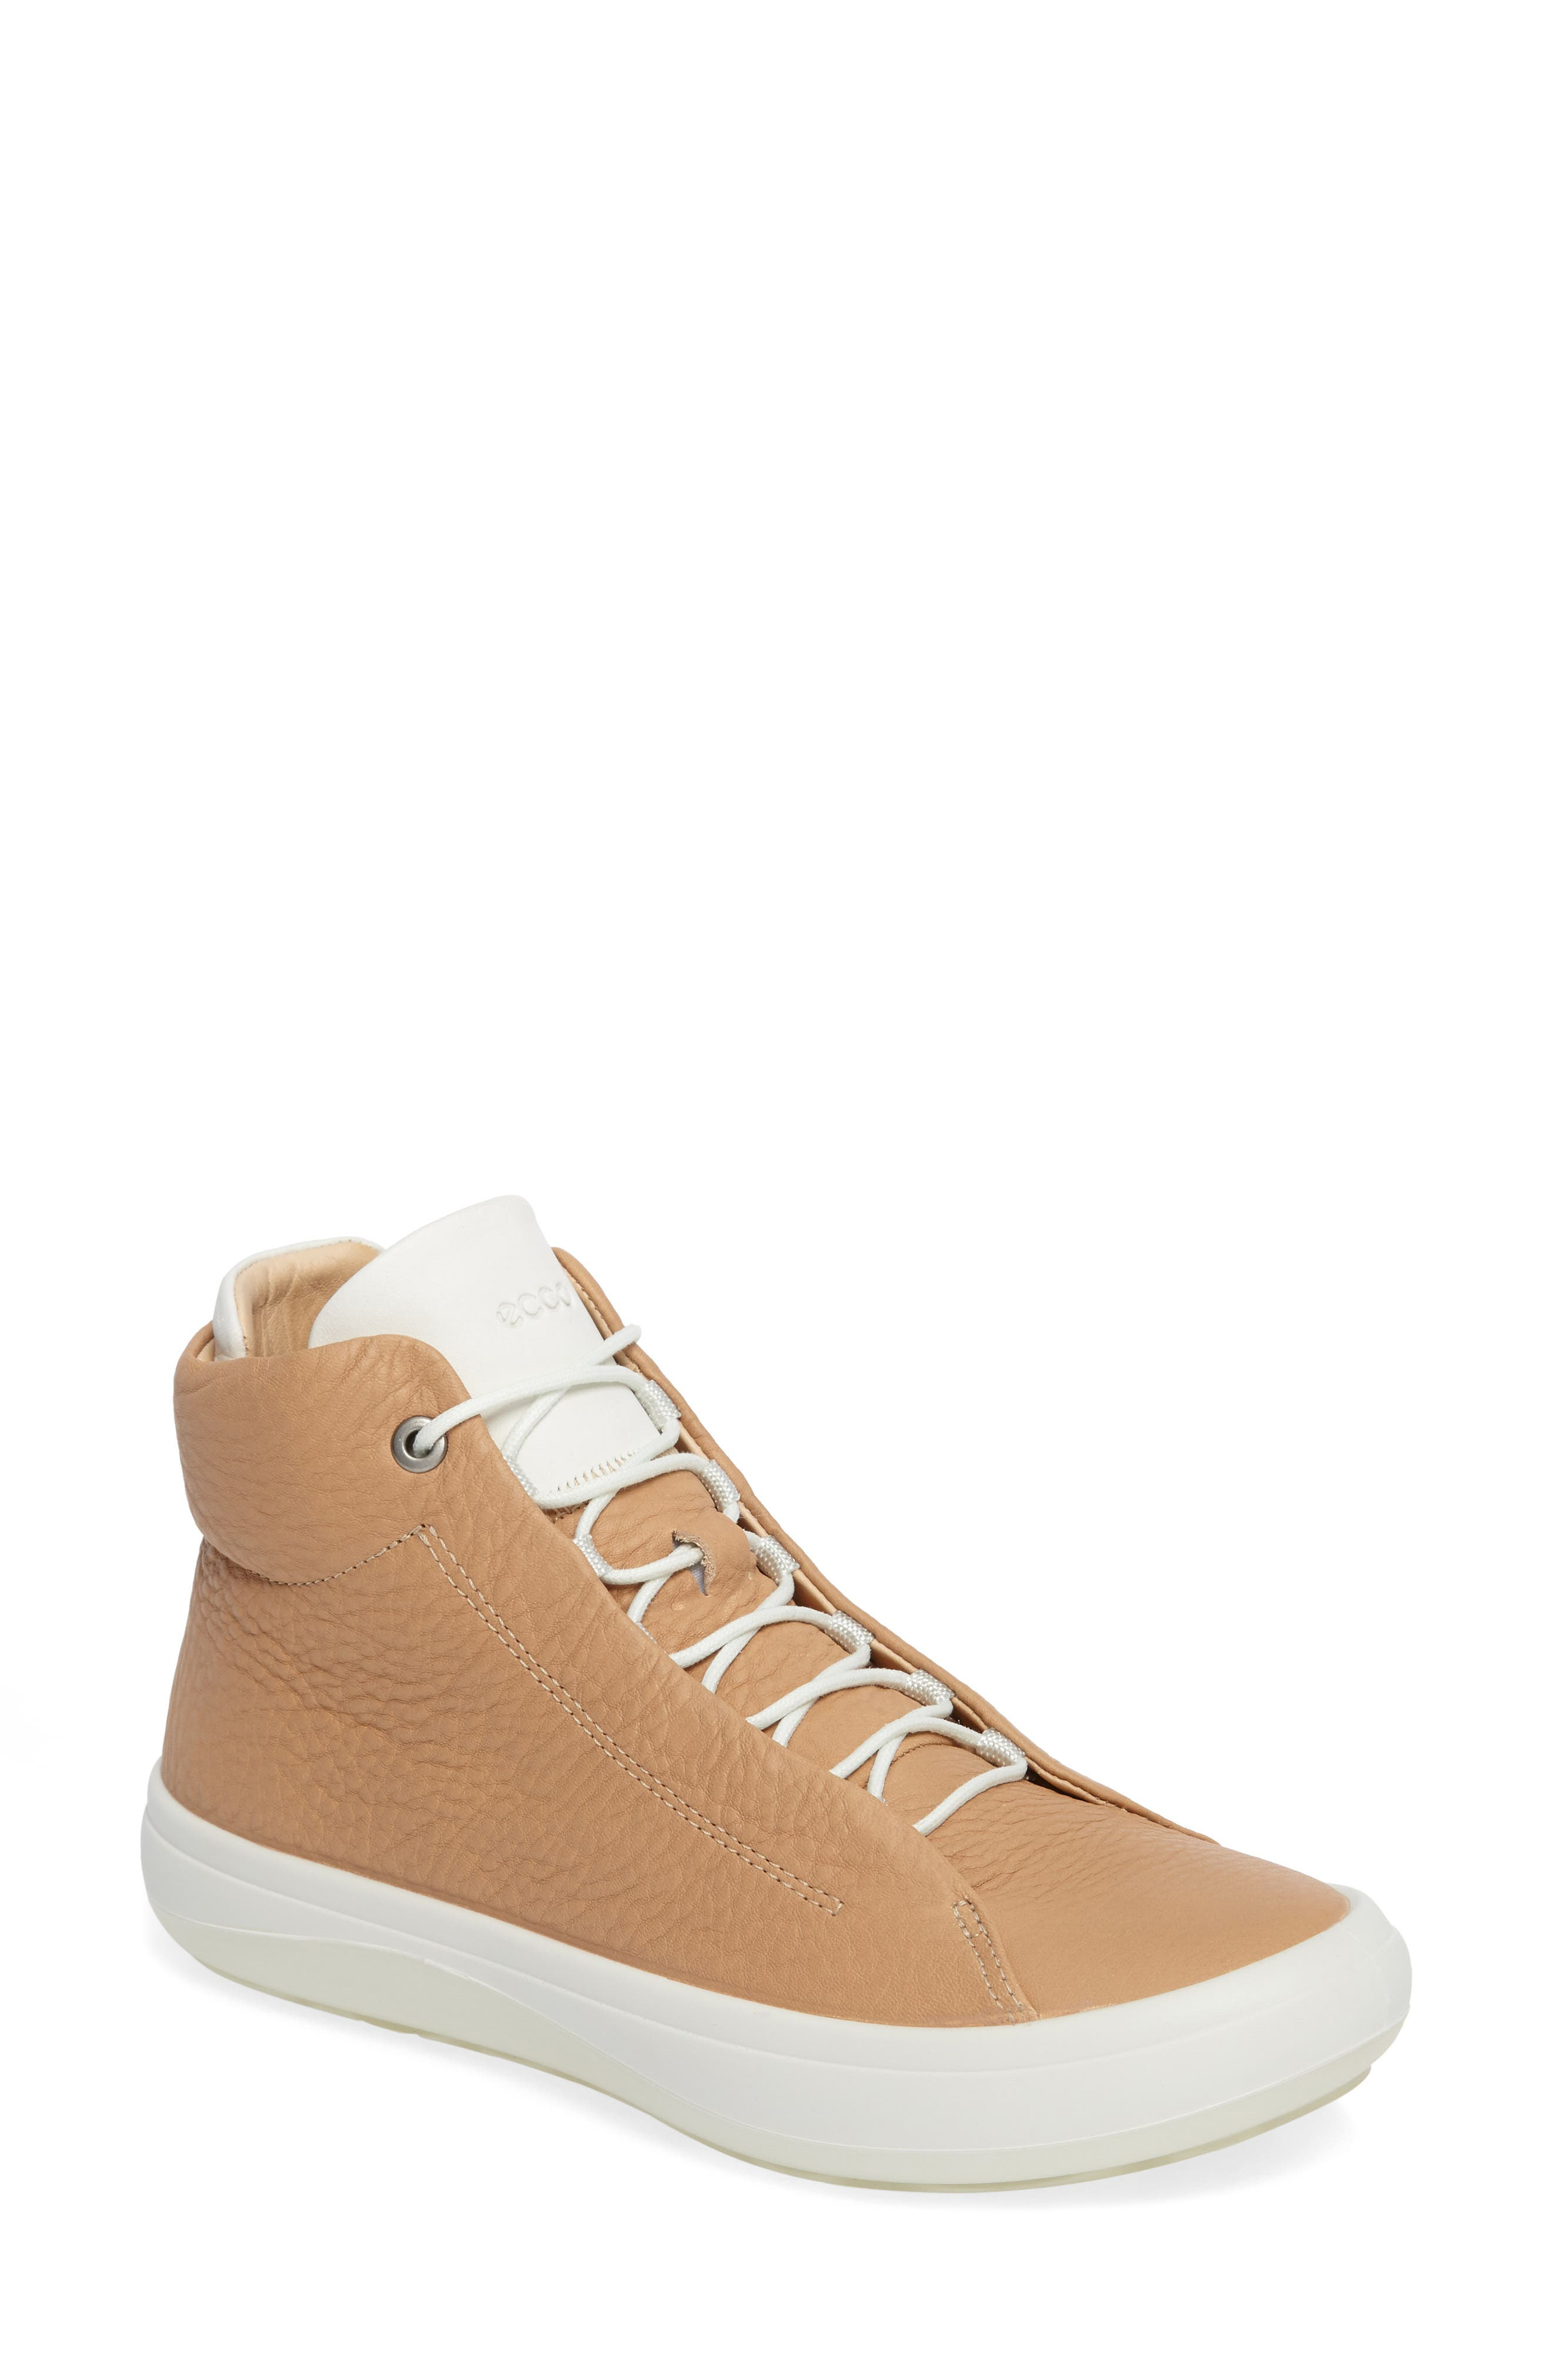 Kinhin Sneaker,                         Main,                         color, Volluto Leather